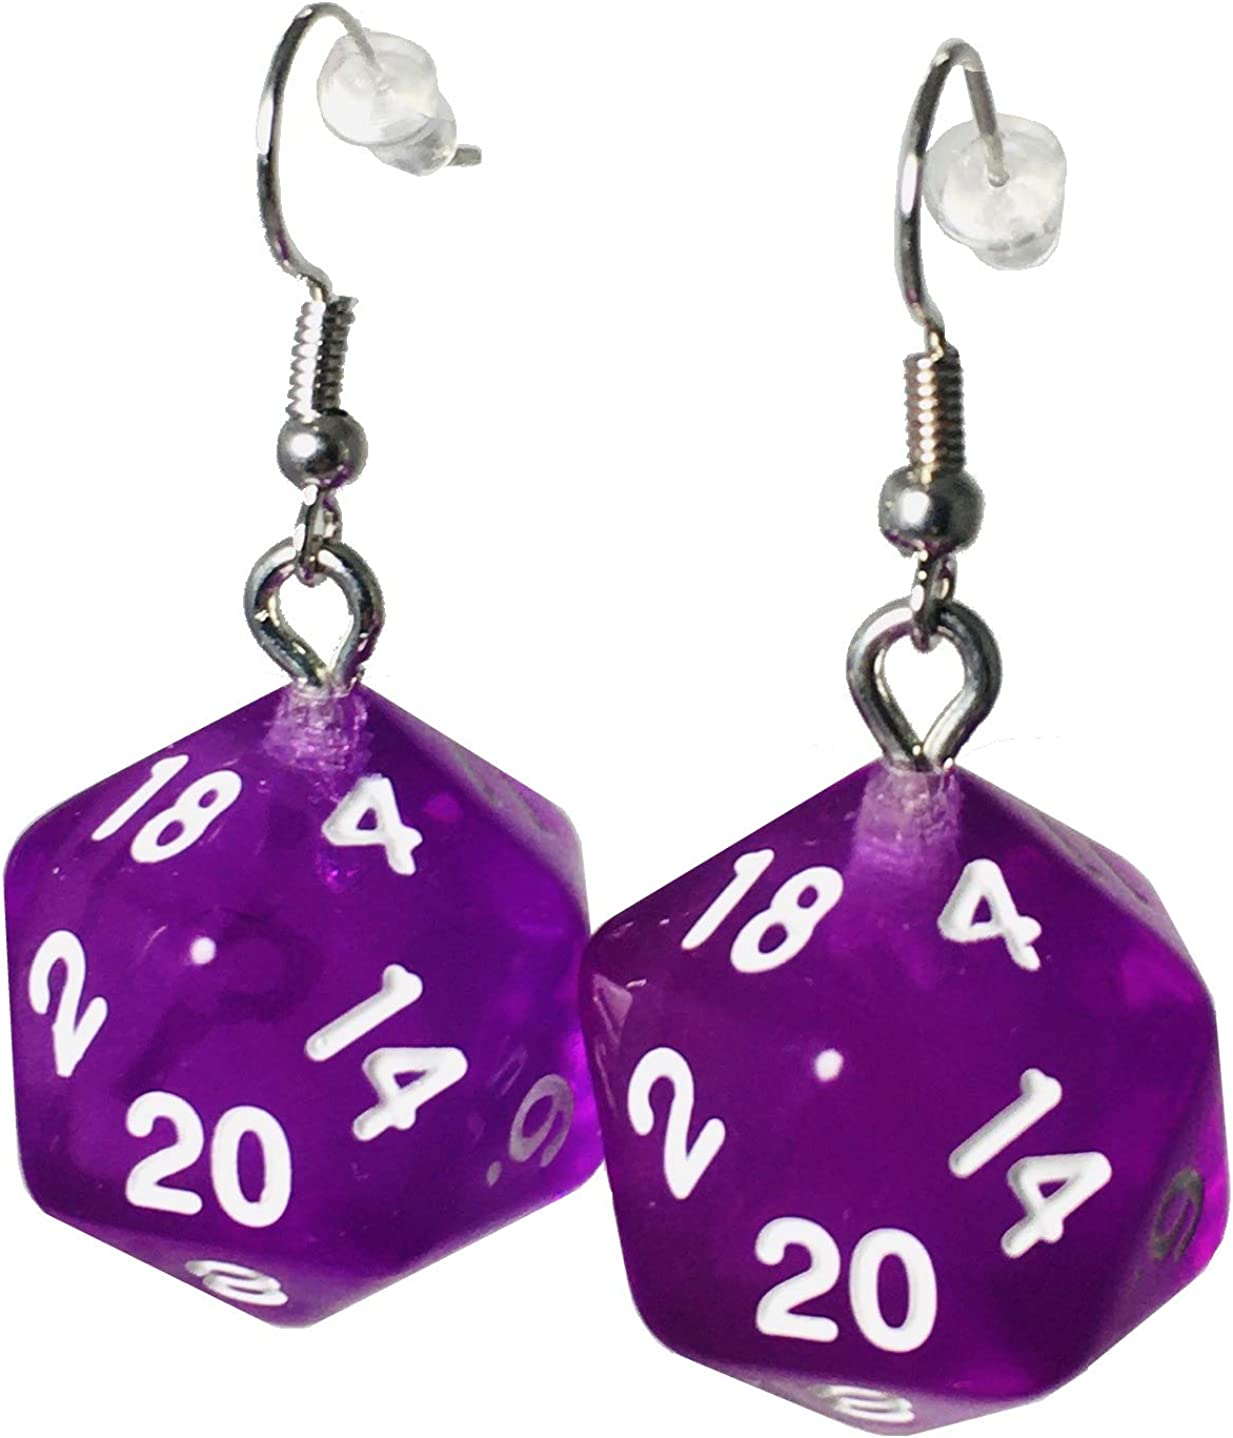 d20 Dice Earrings Translucent (6 Colors Available) - Hook with Earnuts